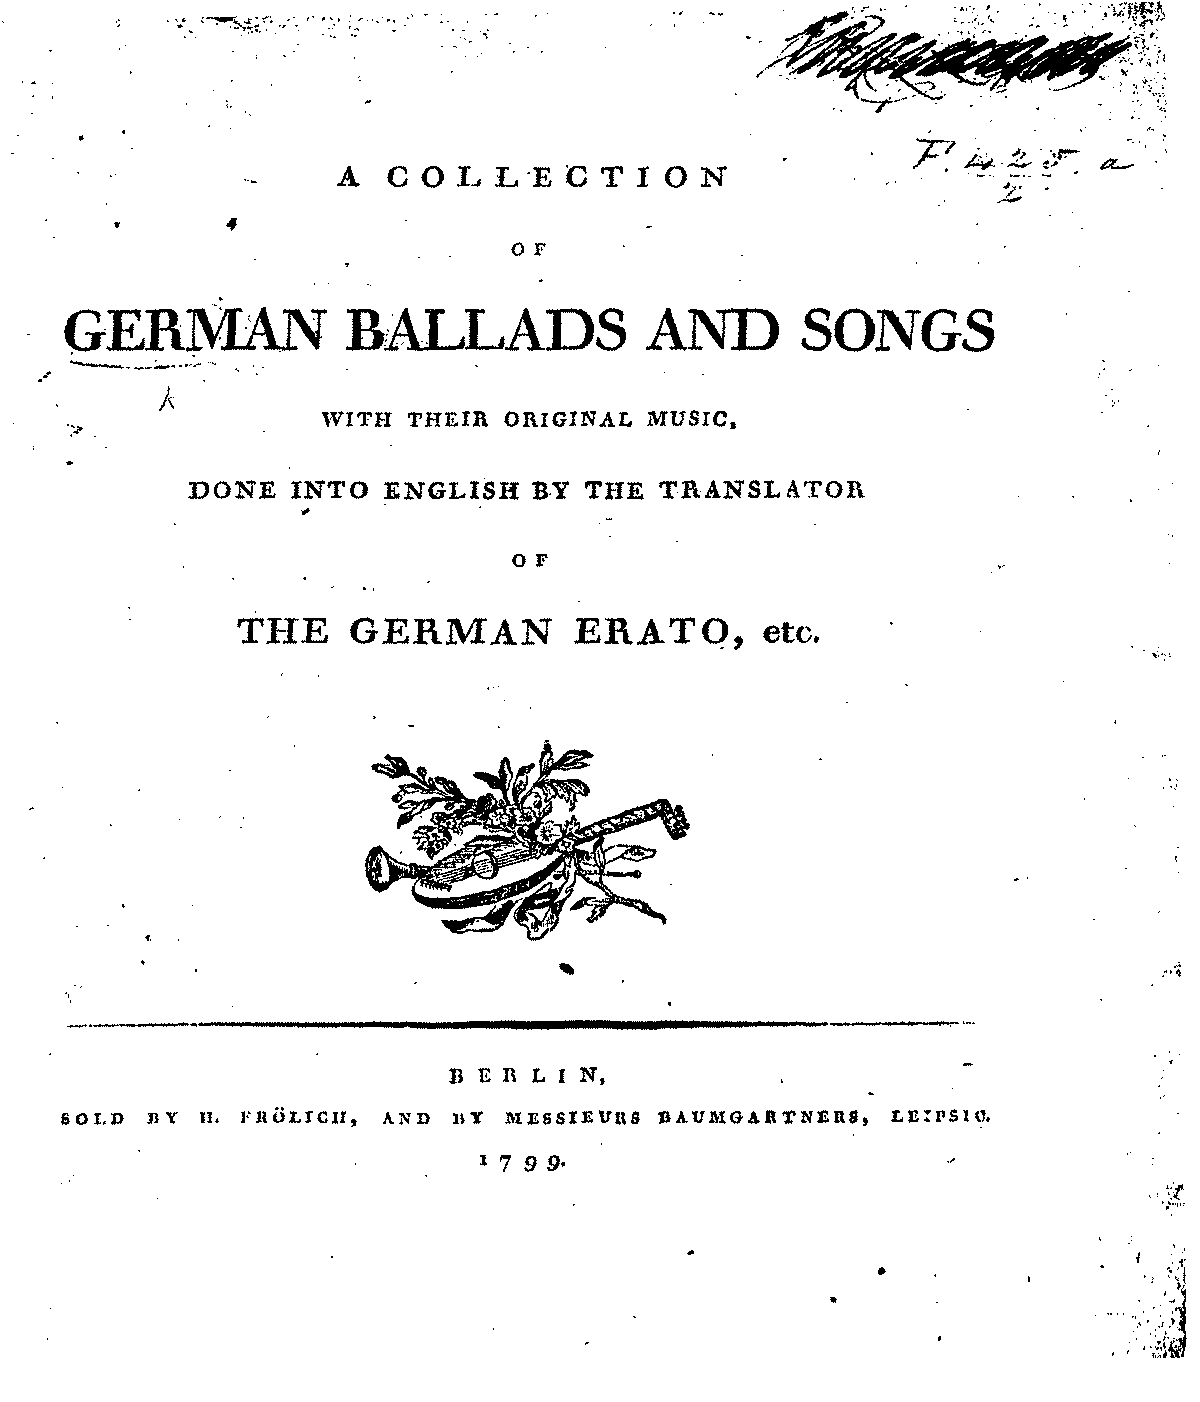 PMLP141019-A Collection of German ballads & songs in english 1799.pdf